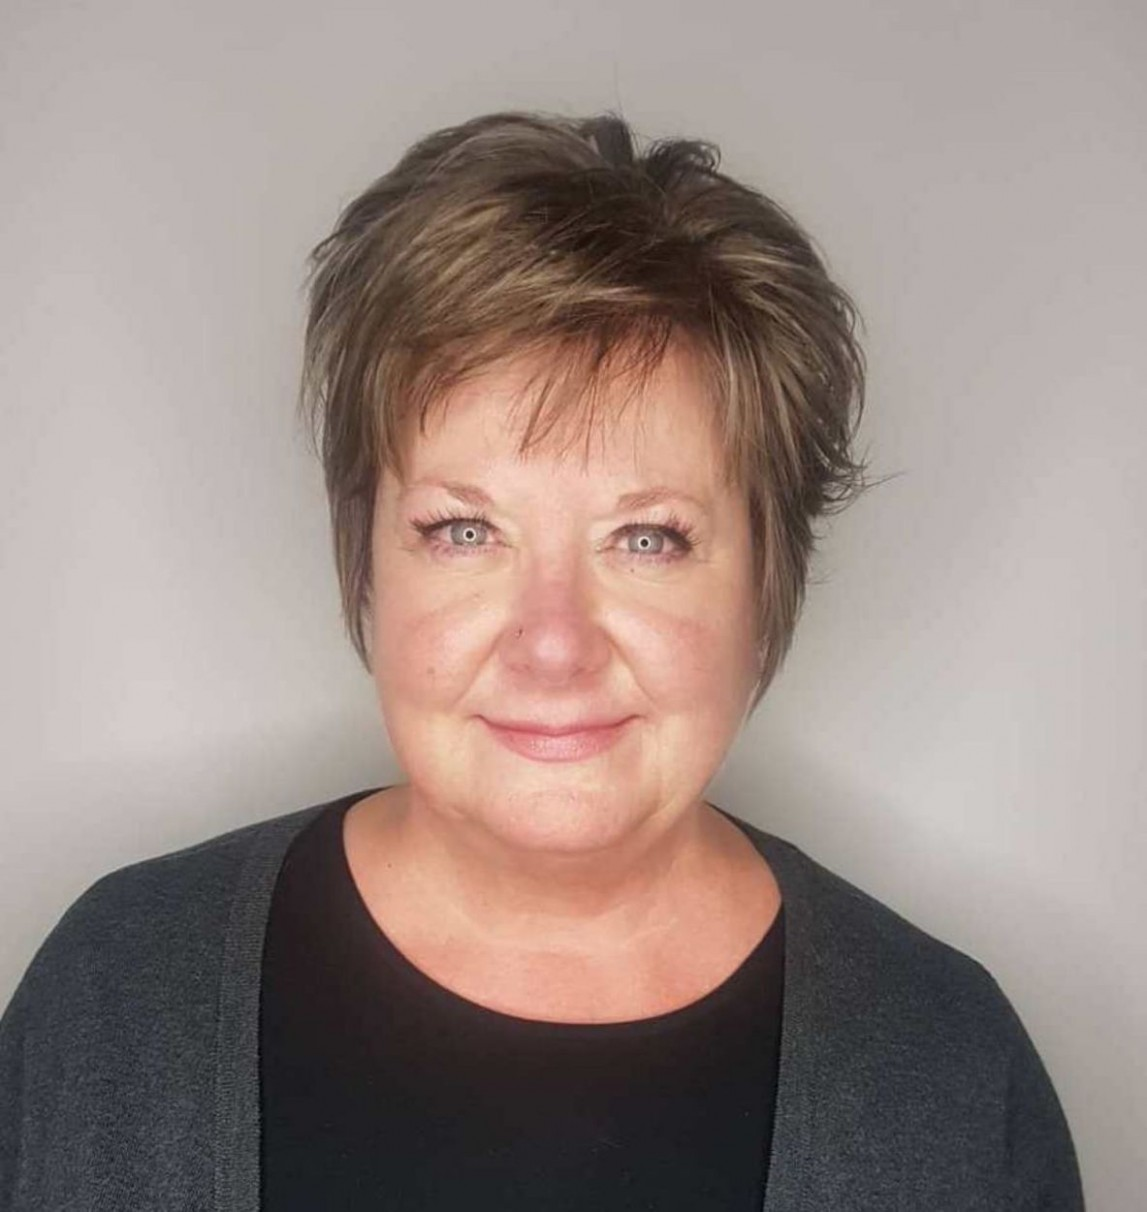 8 Top Short Hairstyles For Women With Round Faces Over 8 In 88 Hairstyles For Fat Faces Over 50